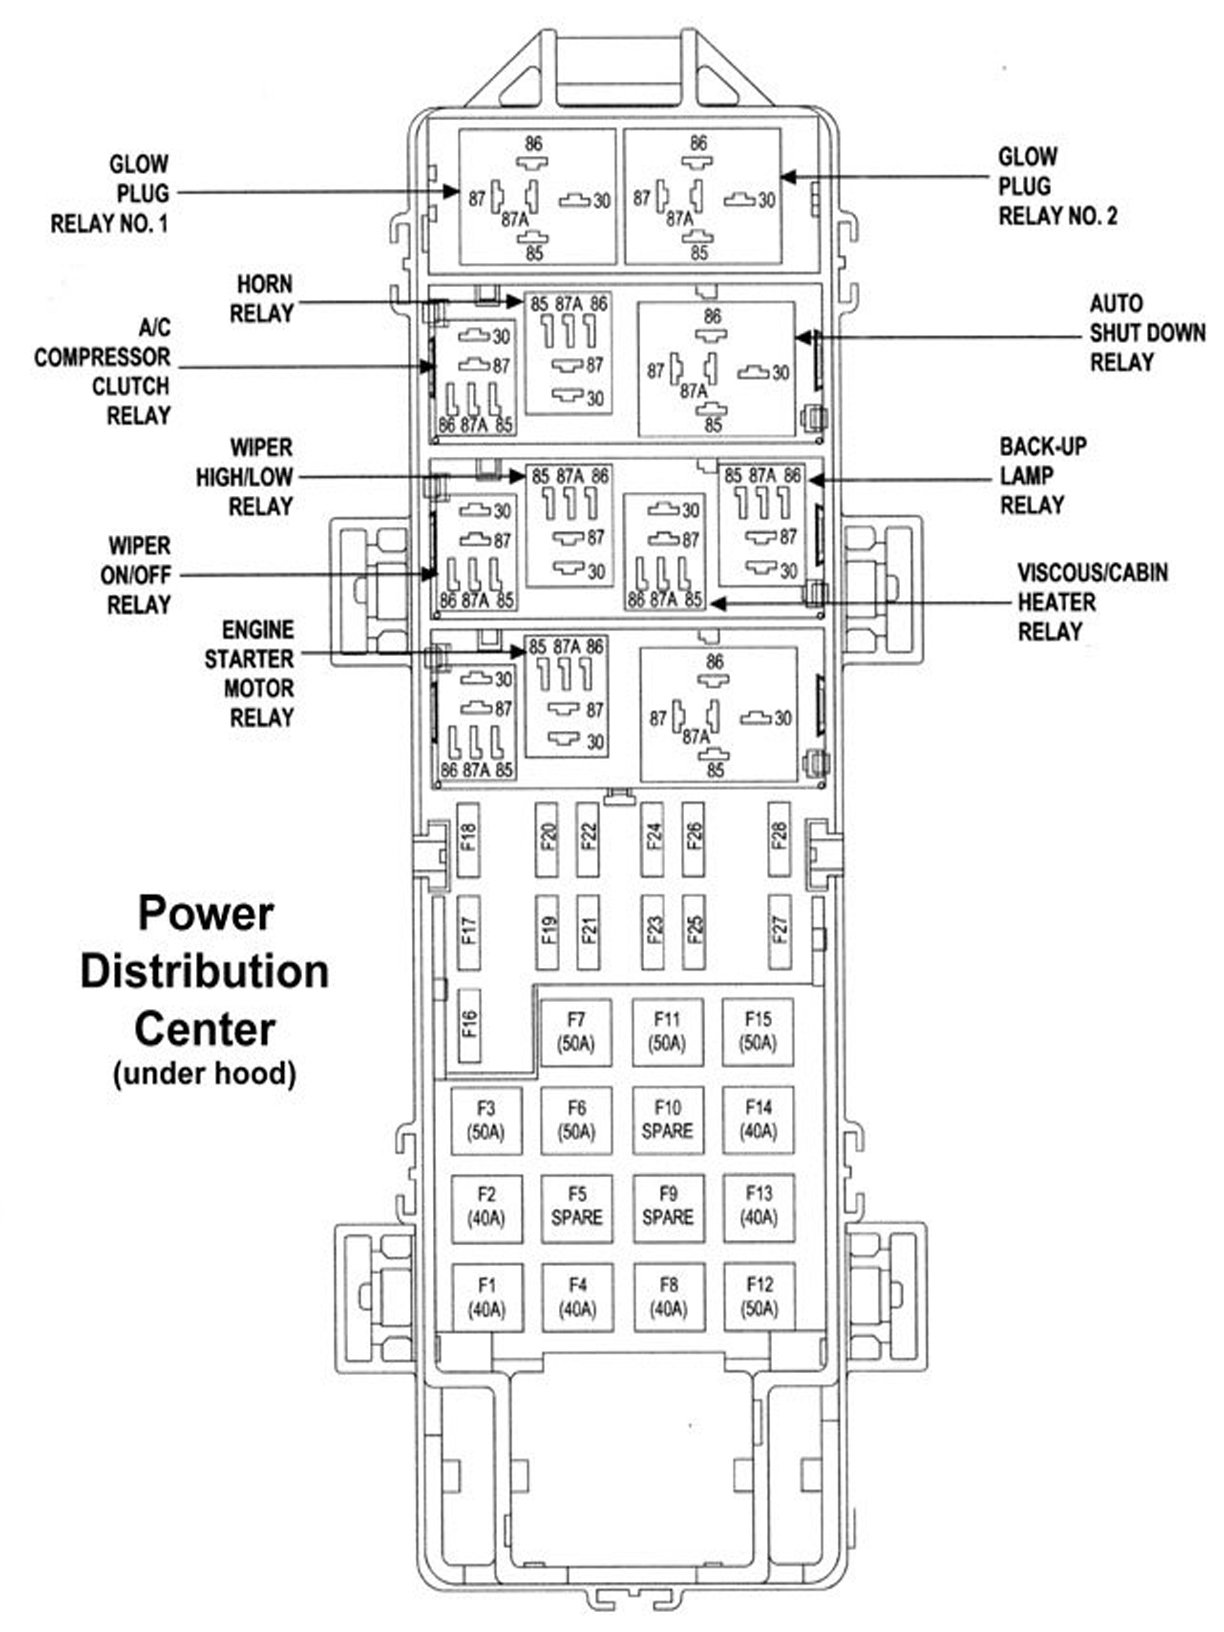 Jeep Grand Cherokee 1999 2004 Fuse Box Diagram 397760 on 1999 ford ranger relay locations